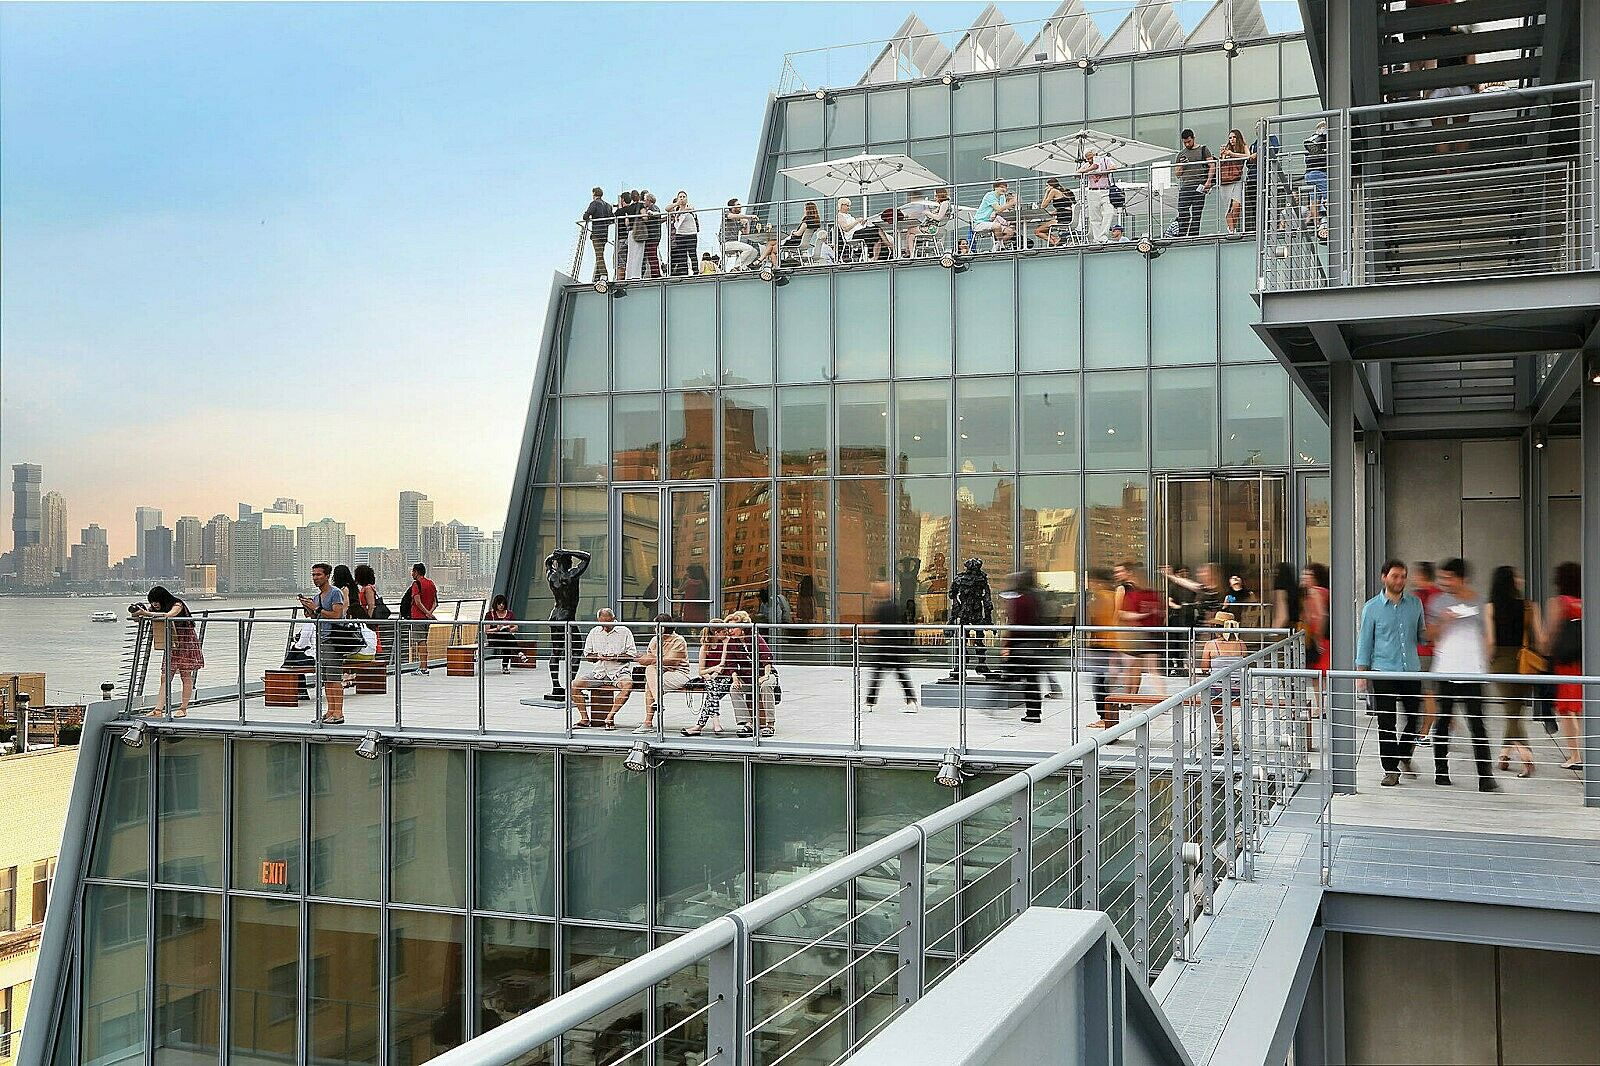 Many people explore the patios of the Whitney Museum of American Art on a bright day in a time lapsed photo. The reflections of the large glass windows appear in front of a view of the city and river in New York City.